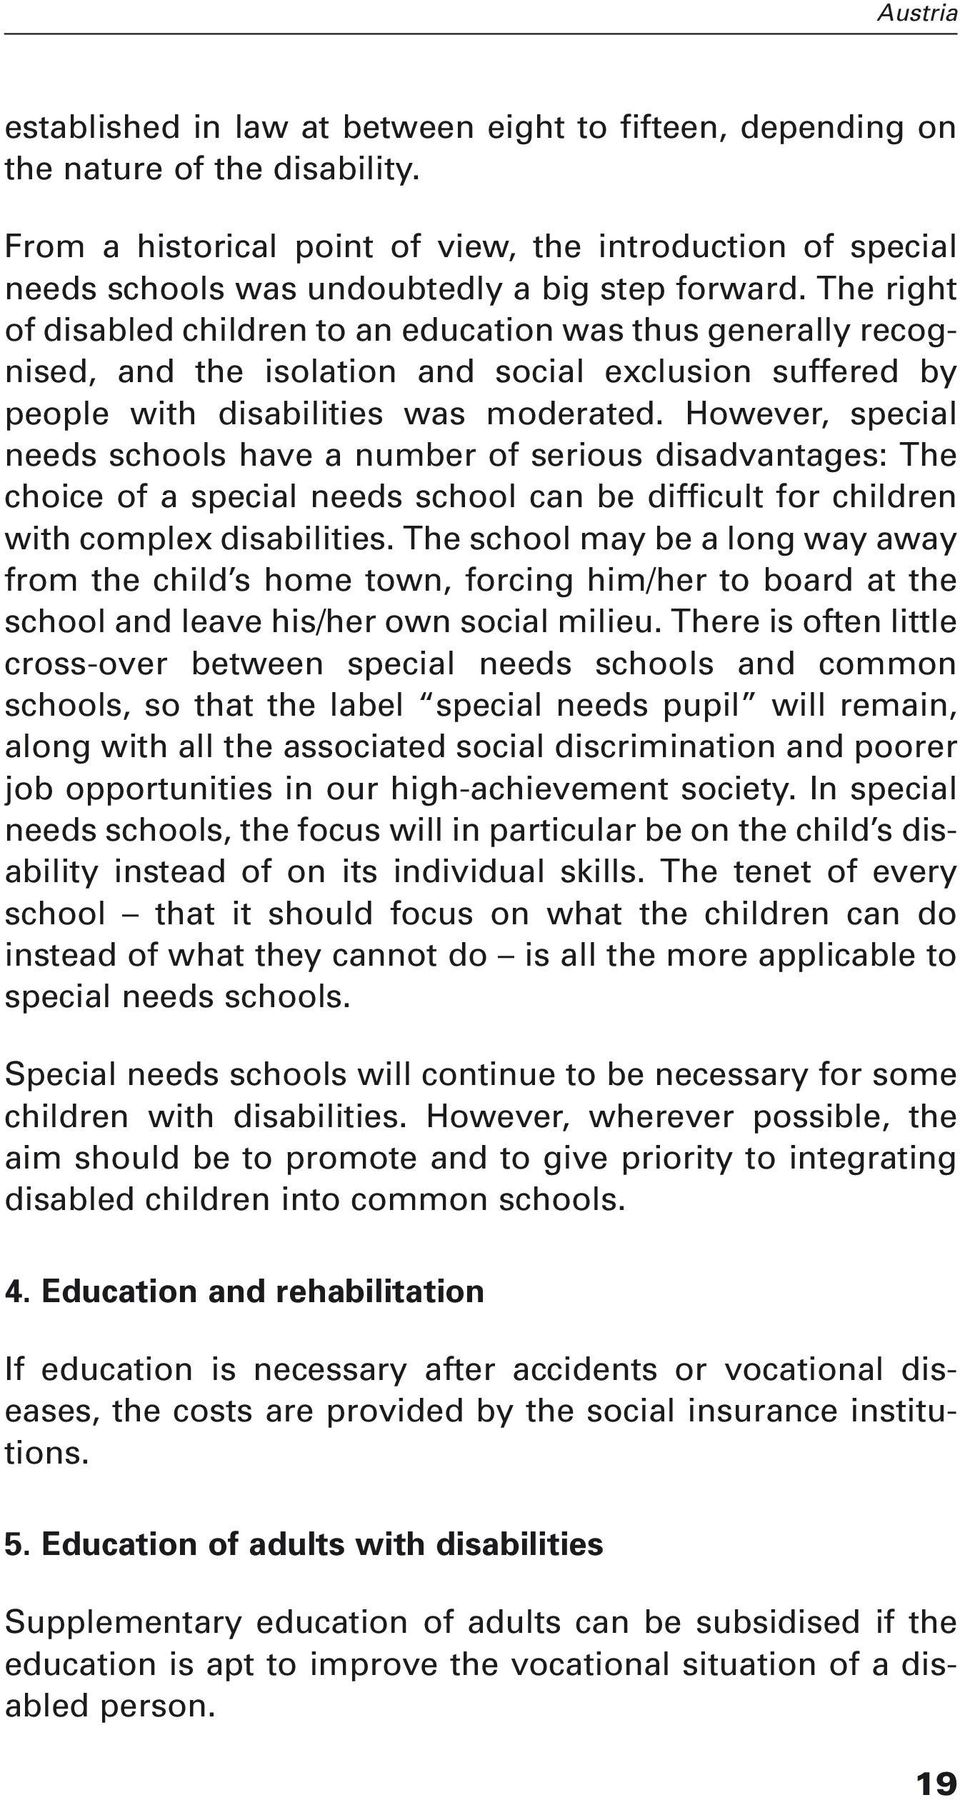 The right of disabled children to an education was thus generally recognised, and the isolation and social exclusion suffered by people with disabilities was moderated.